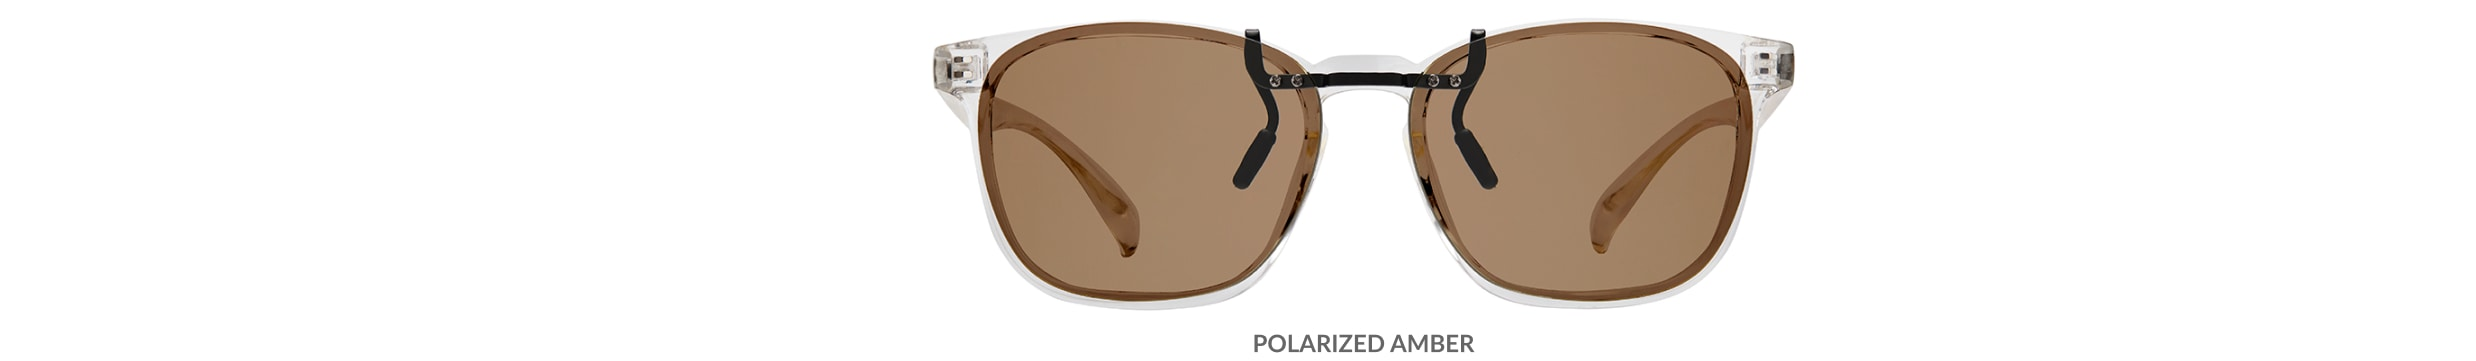 Custom clip-ons. Our polarized custom clip-ons reduce glare and are available for almost any frame. Each clip-on is specially cut to fit the frame with prices starting at just $3.95  (Compare to $50). Zenni square glasses #2020123 in clear, shown with amber polarized custom clip-on.